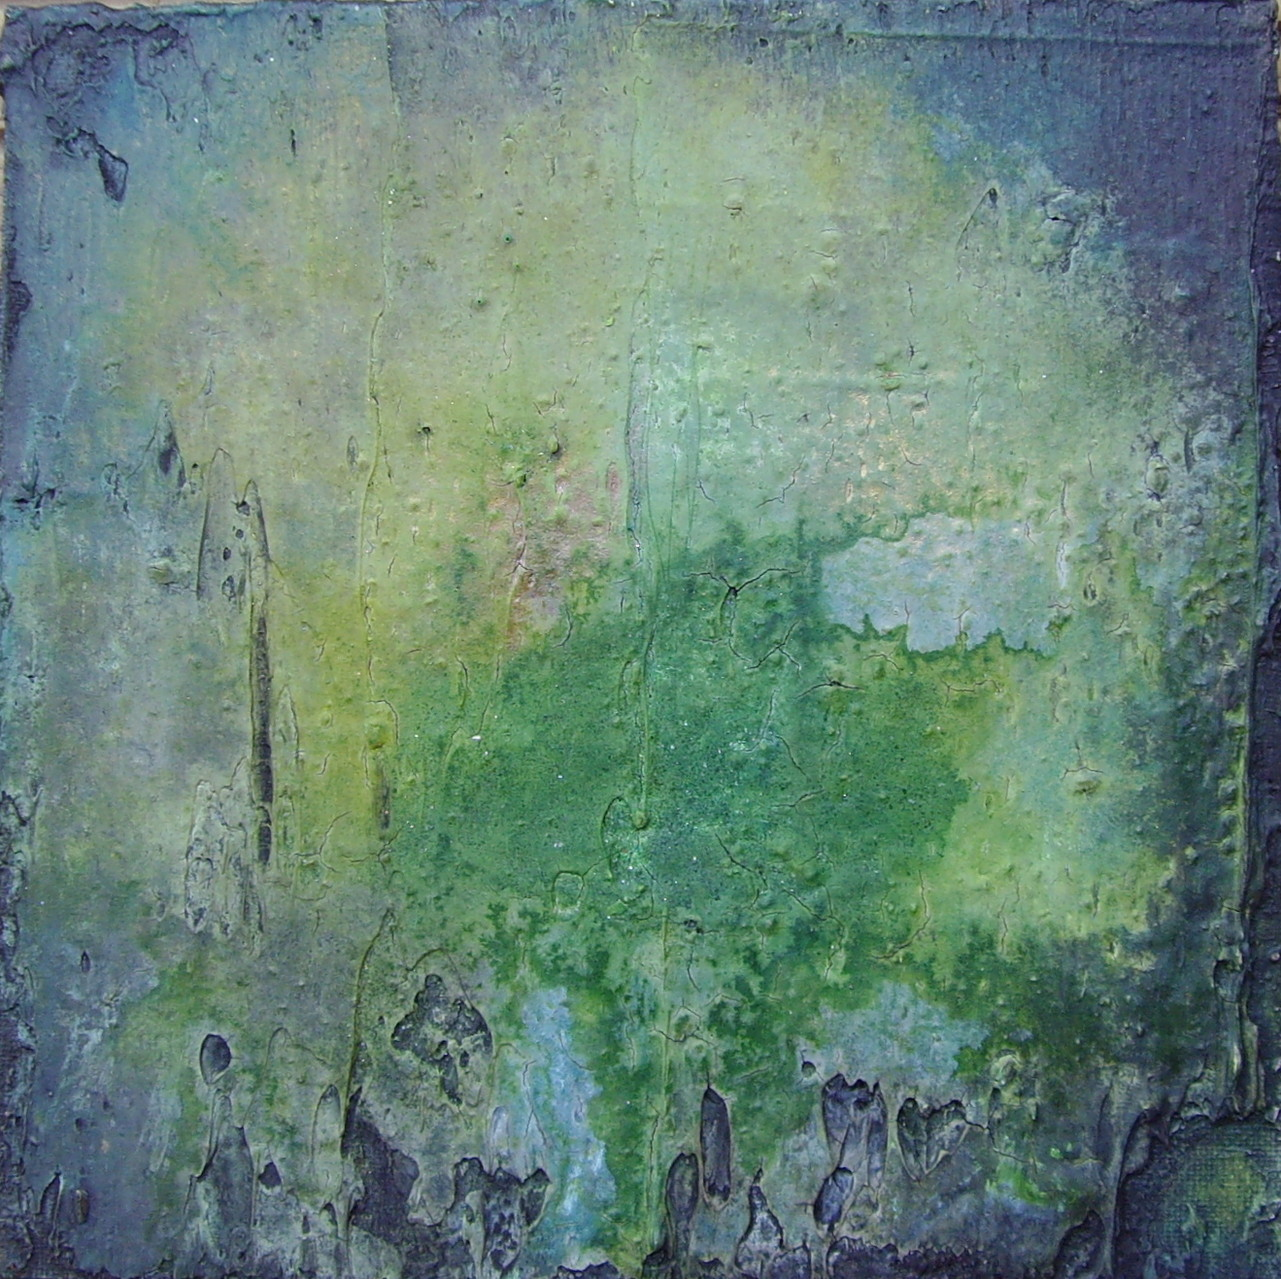 Unterwasserwelt, 20 cm x 20cm, Mixed Media